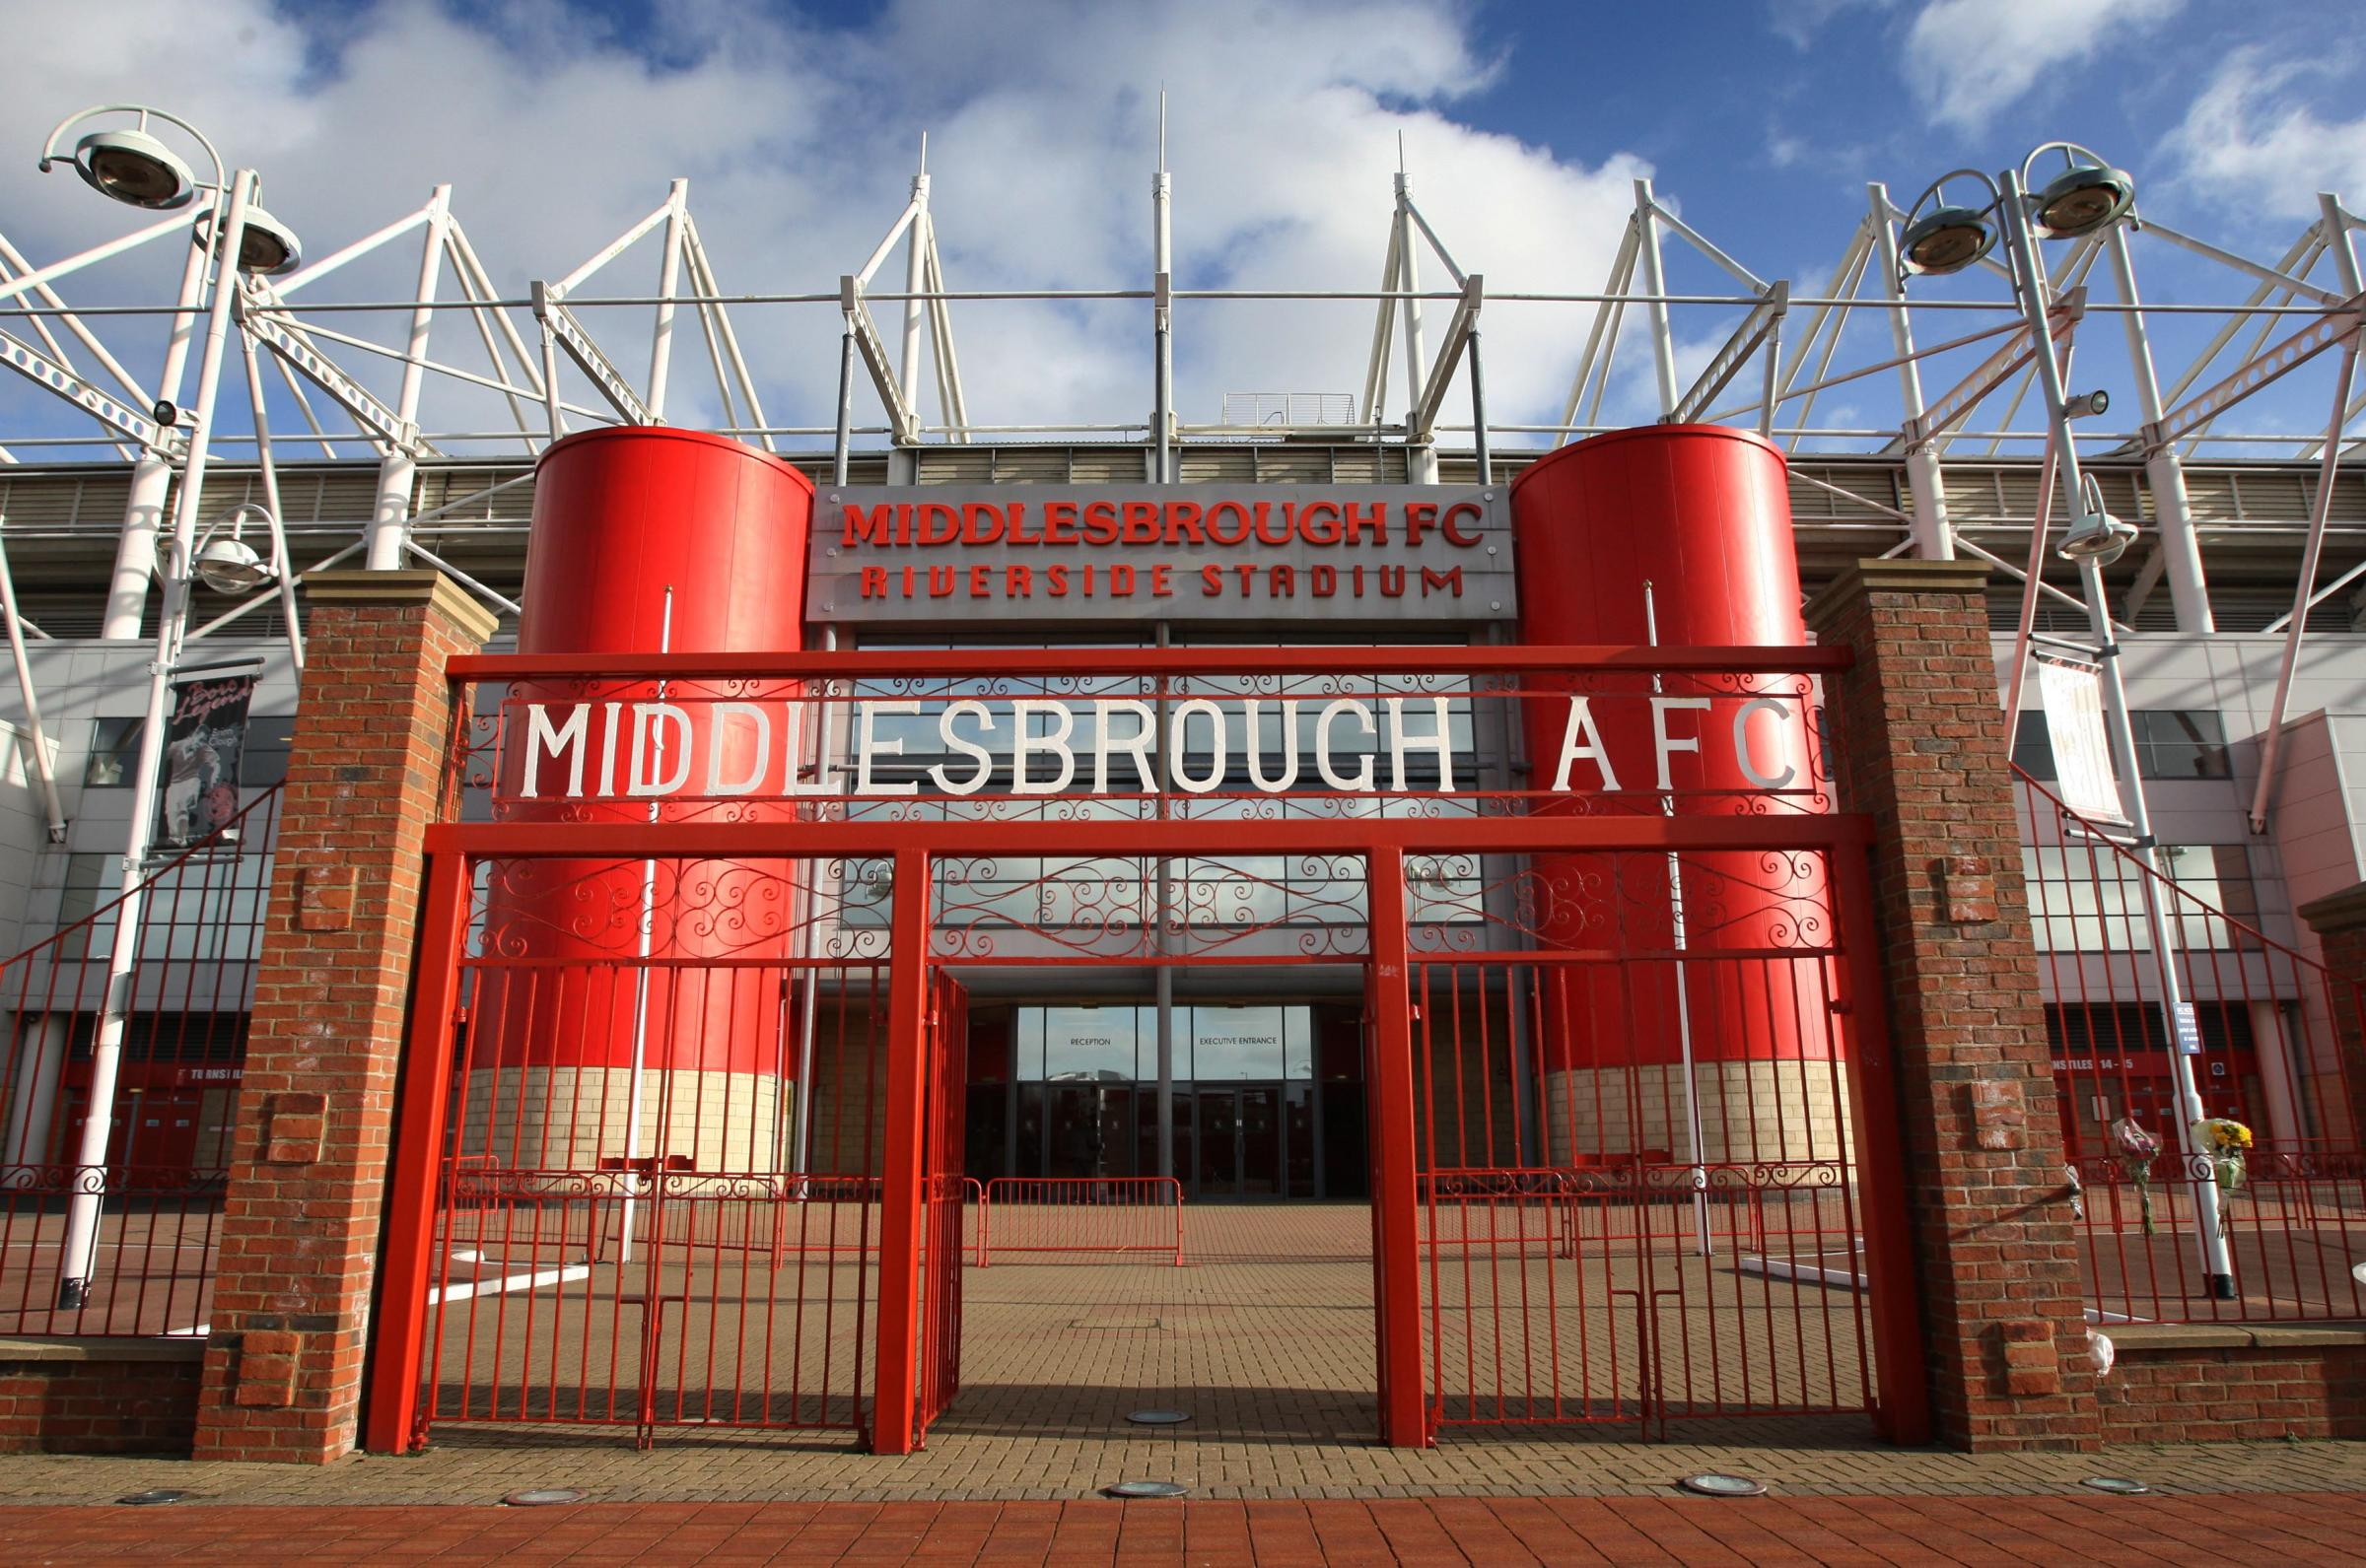 Top officers at Cleveland Police enjoyed hospitality at Middlesbrough's Riverside Stadium.